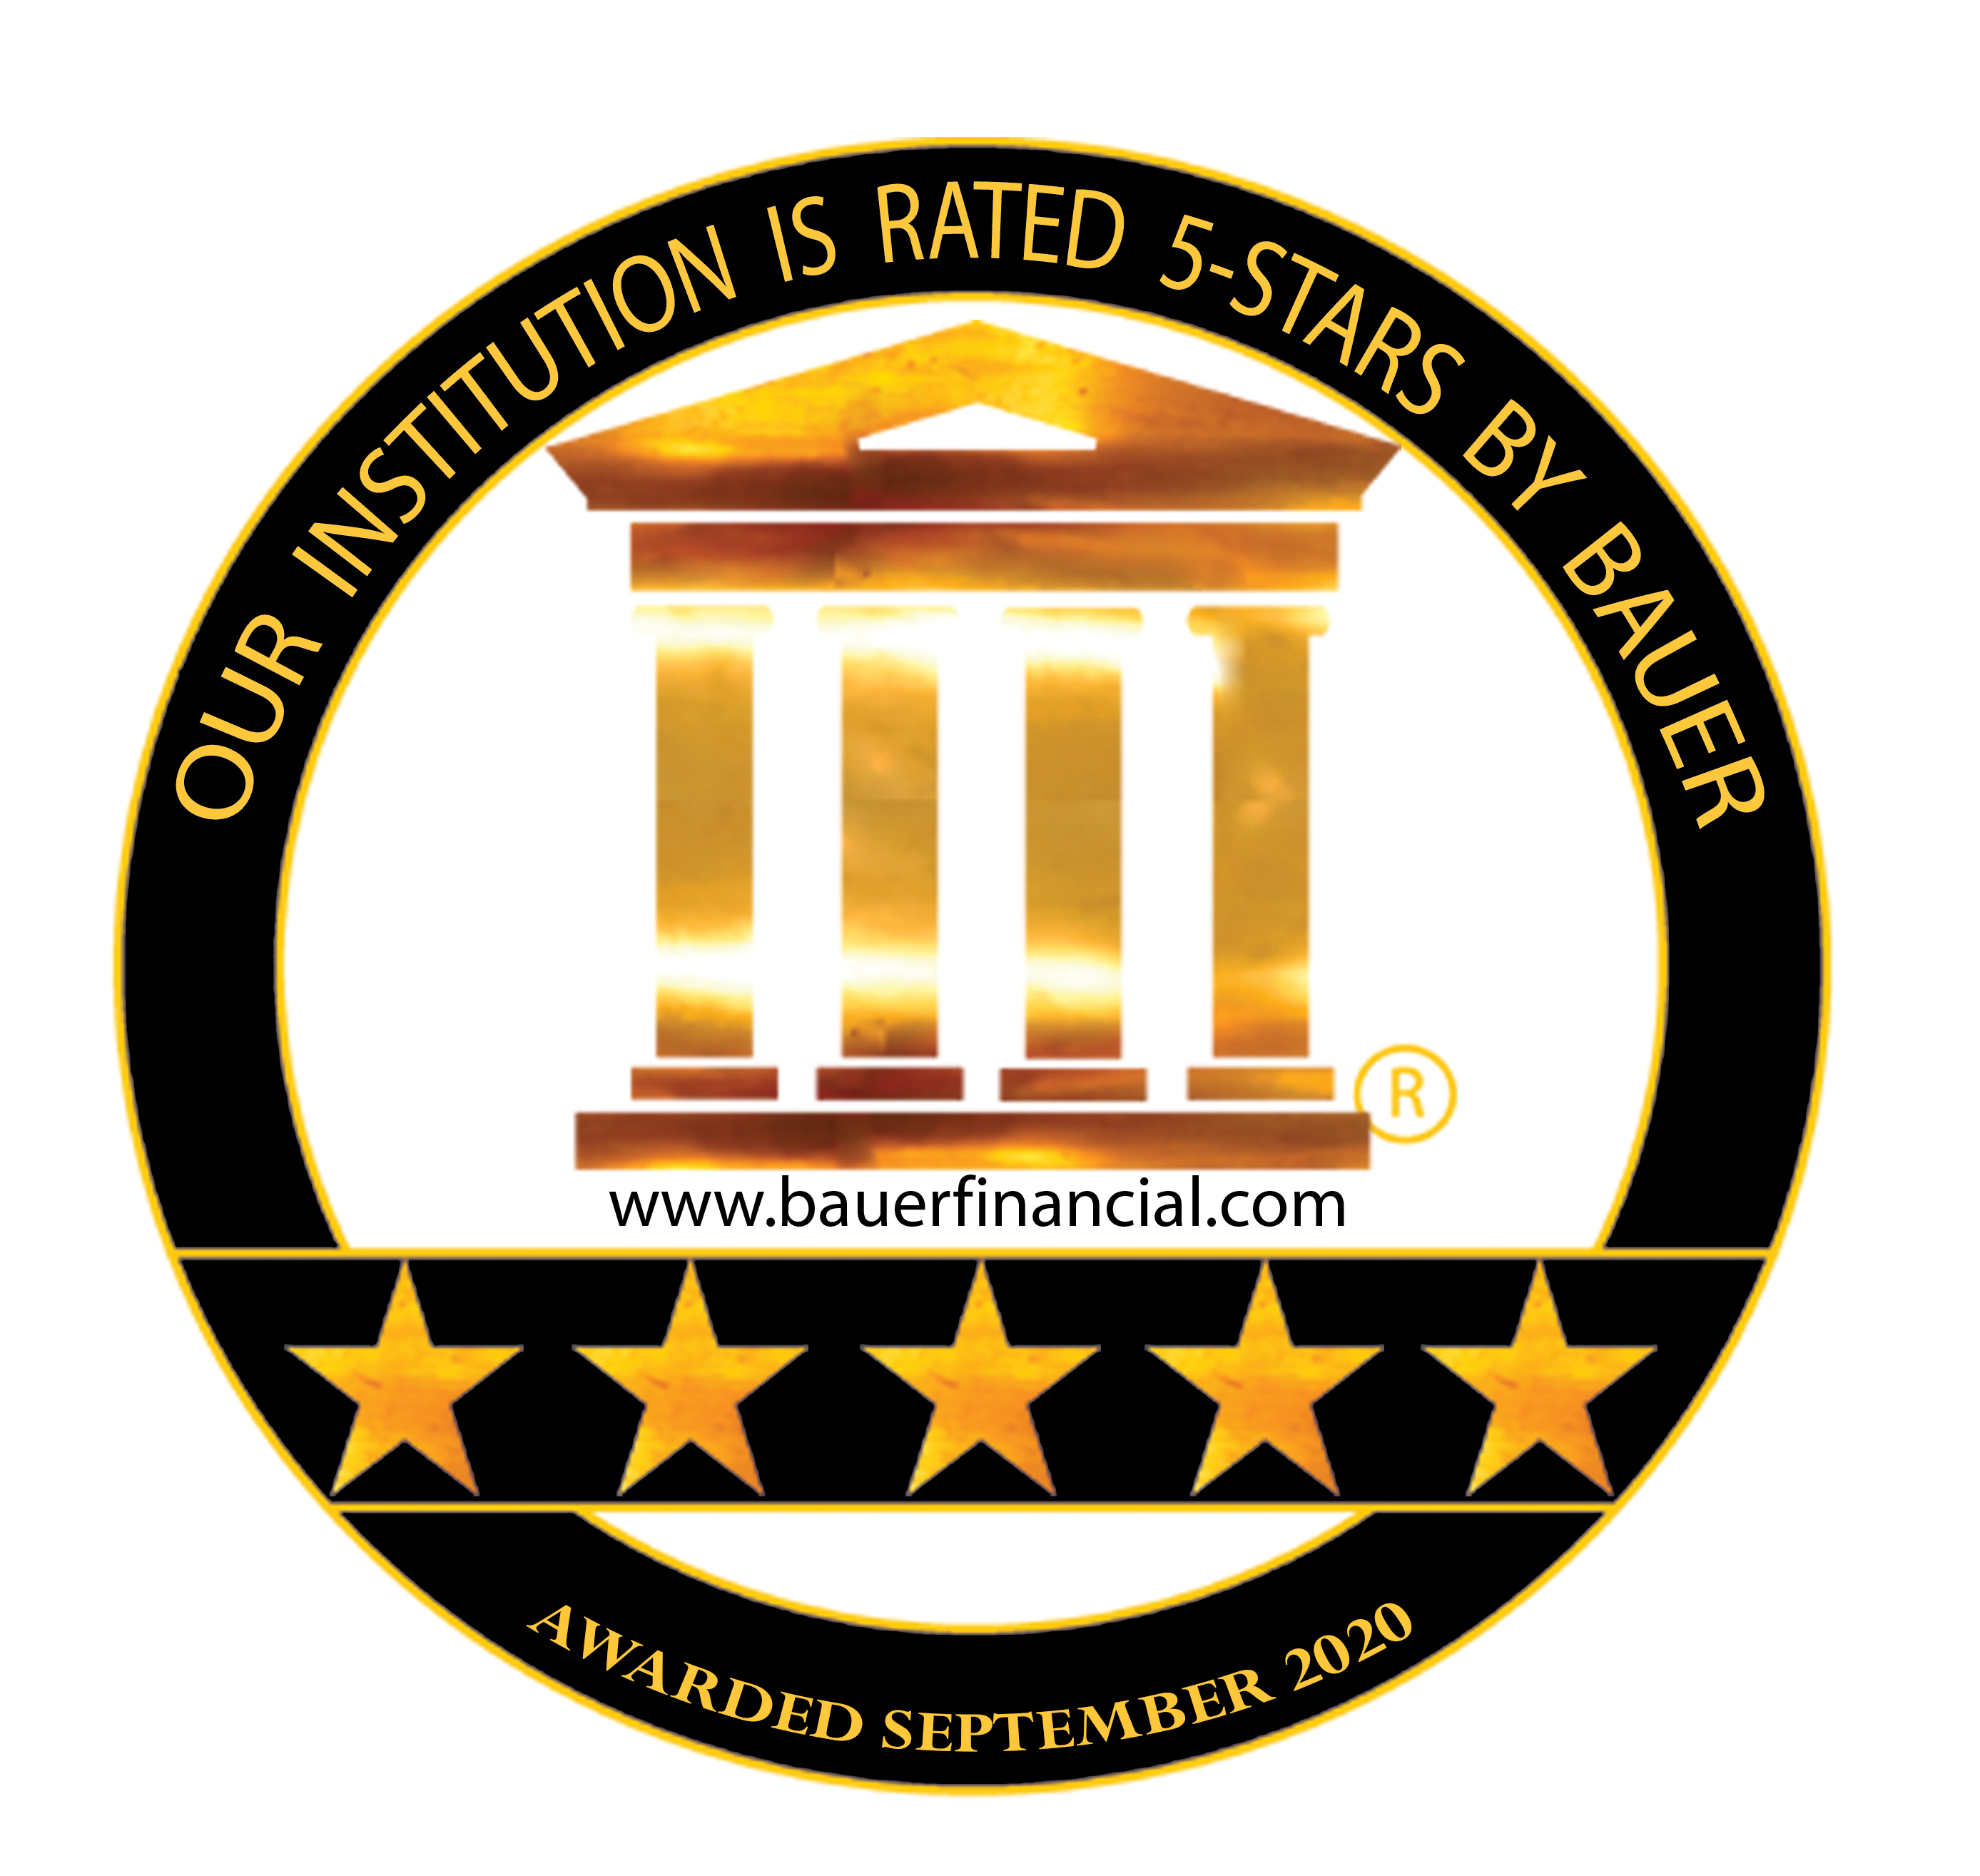 Bauer Financial's 5 Star Rating Badge